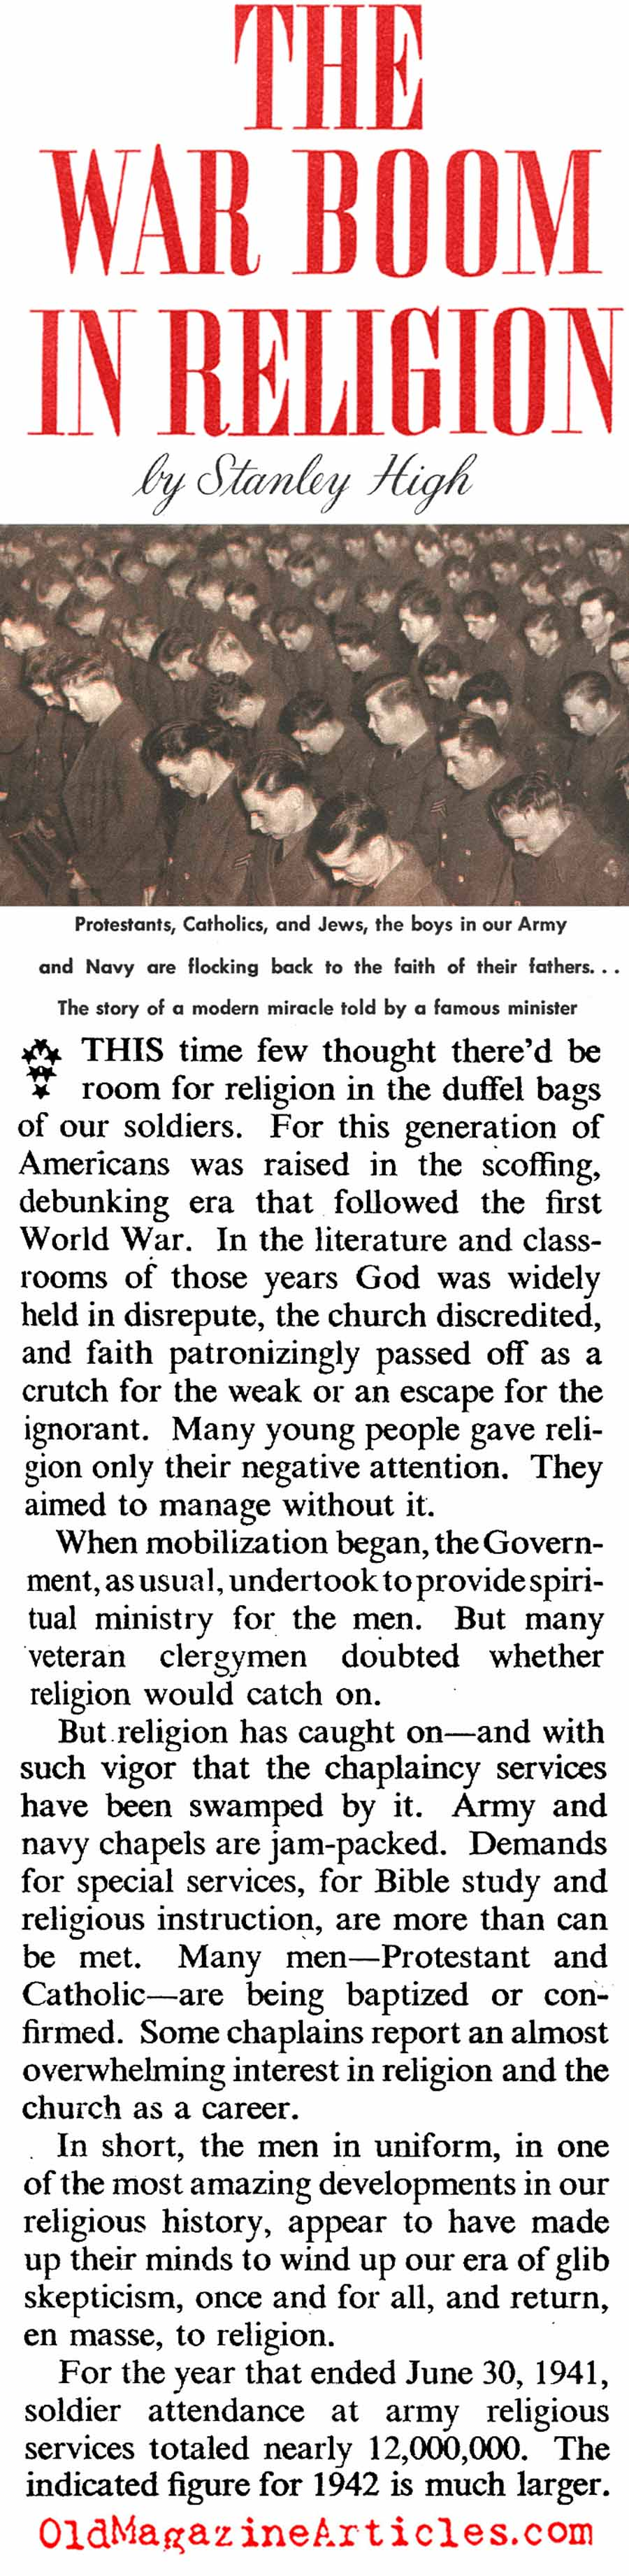 The W.W. II Revival In Faith (American Magazine, 1942)